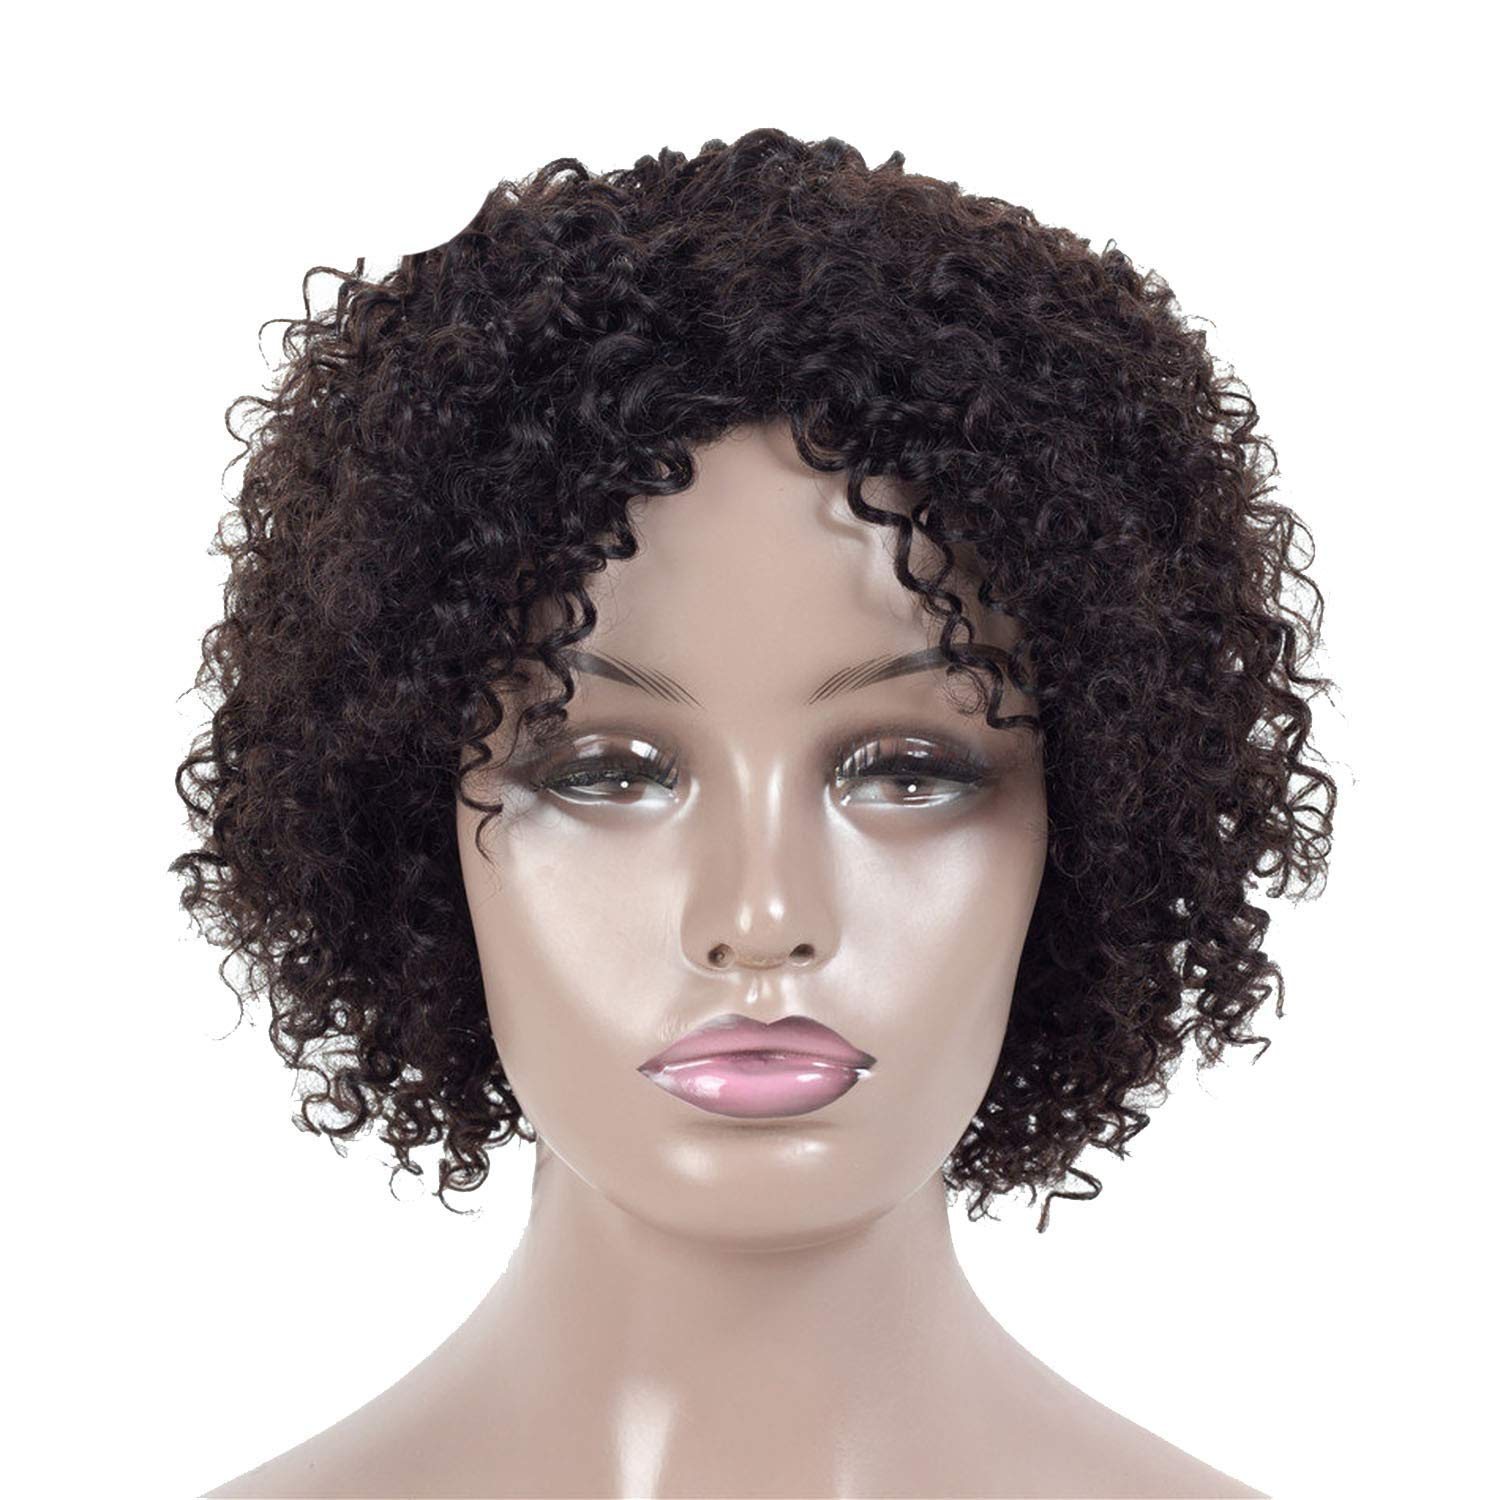 DKFH Shirts Short Human Hair Wigs for Black Women Jerry Curl Human Hair Wigs 4 Colors Wigs,None Lace,#1B KDE by DKFH